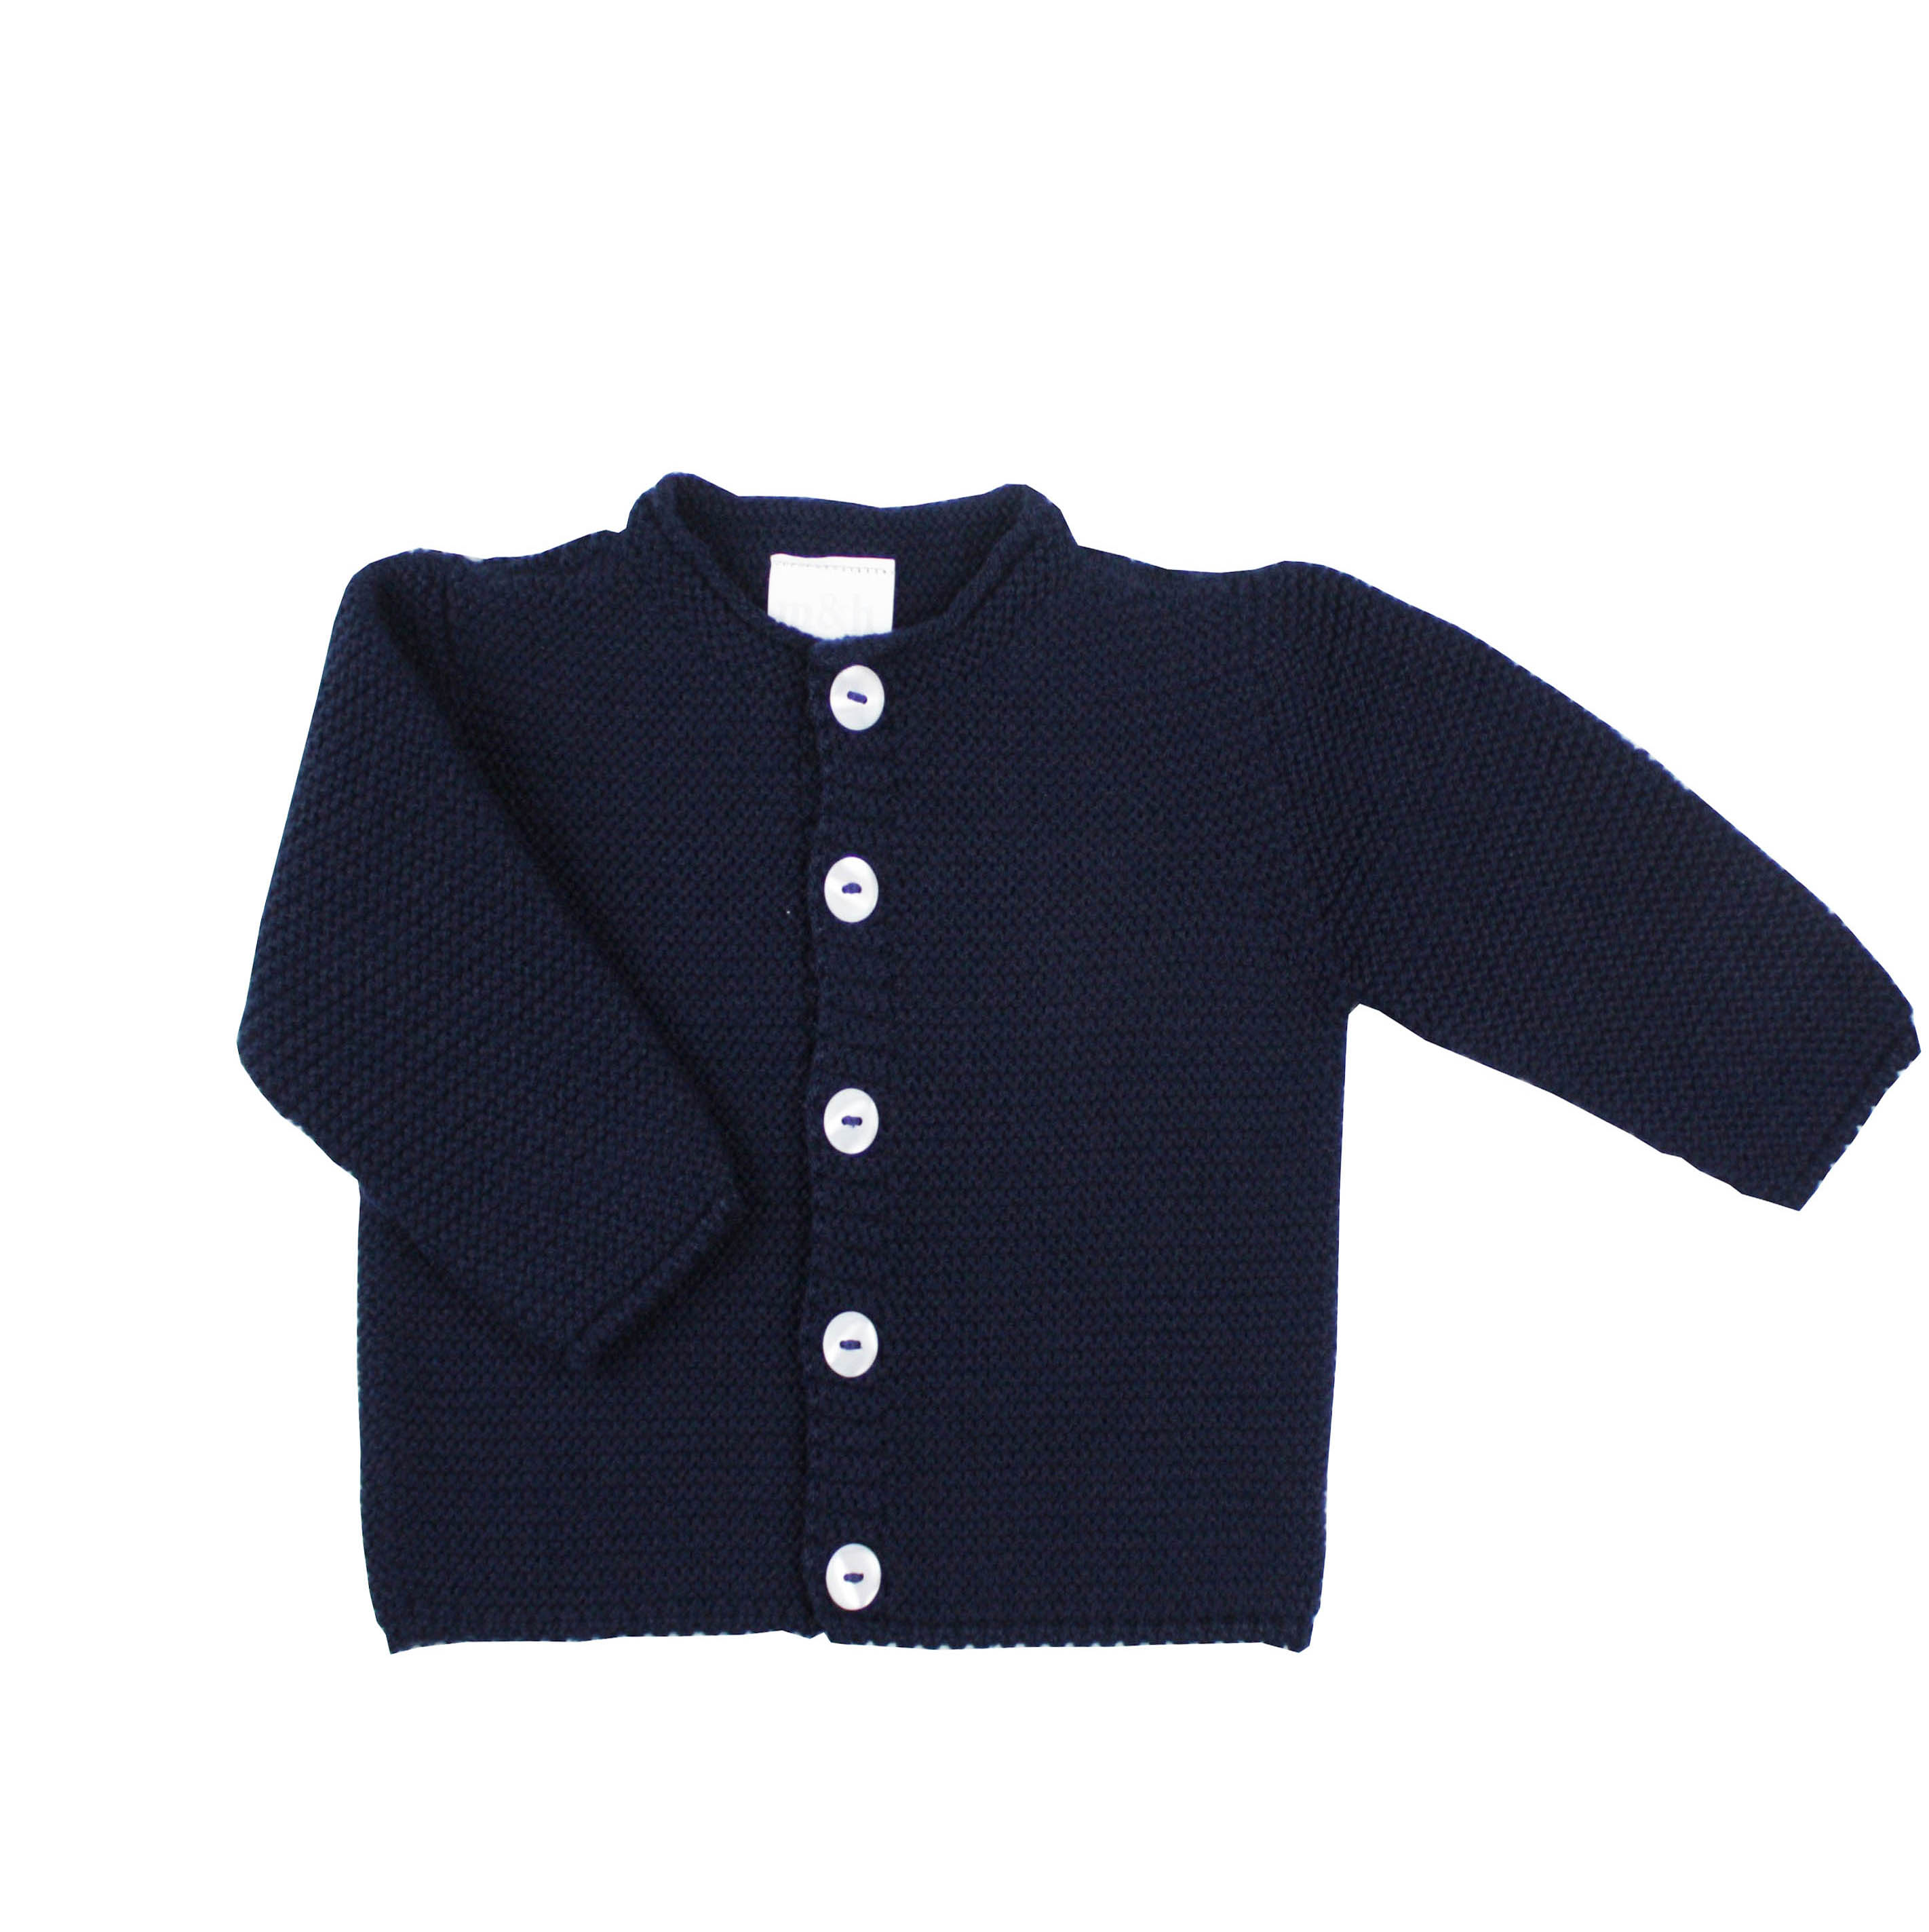 Long buttoned thick knit cardigan in navy blue  Made in